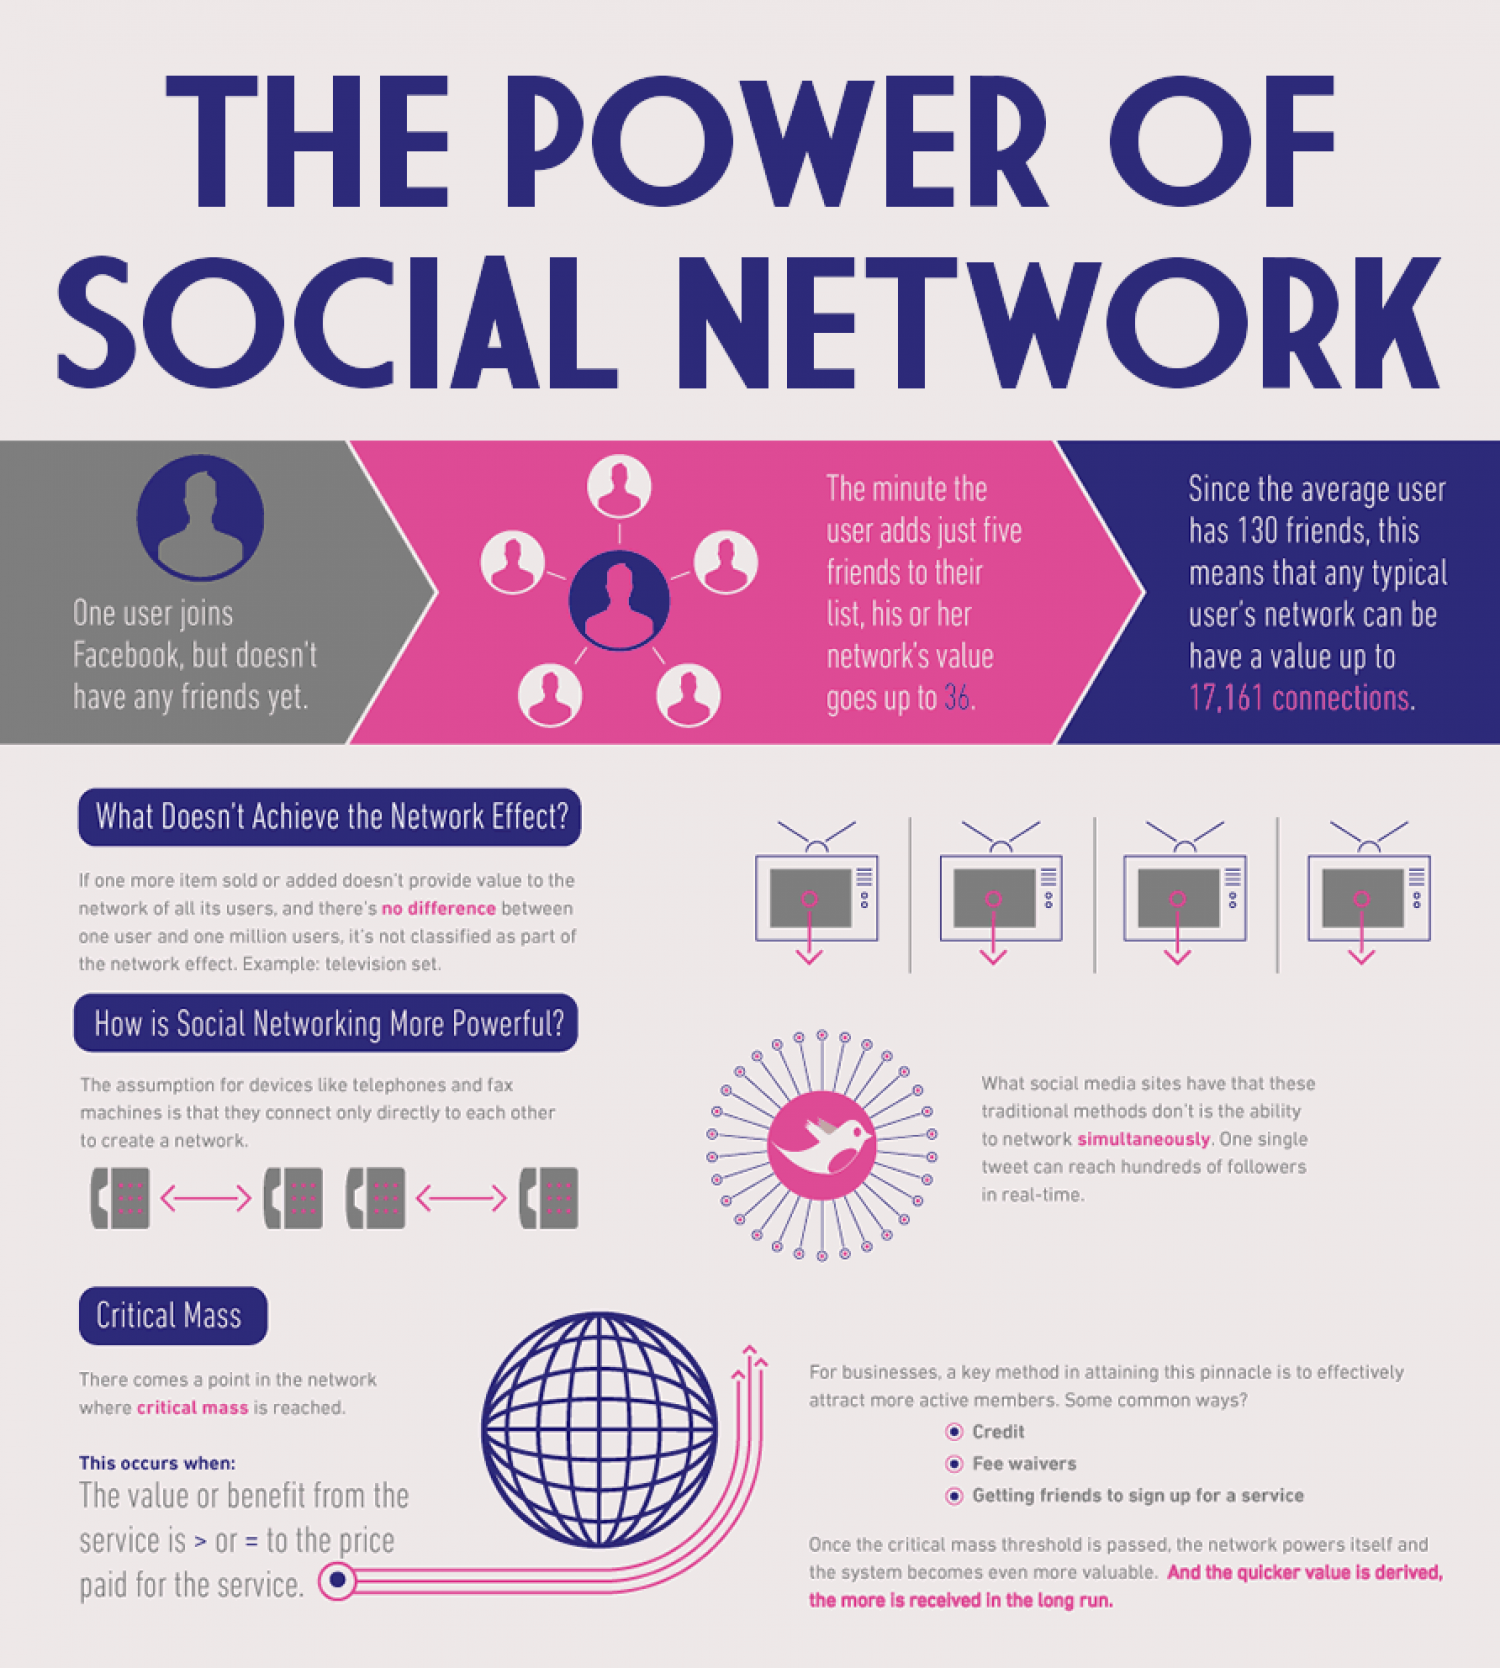 The Power of Social Network Infographic